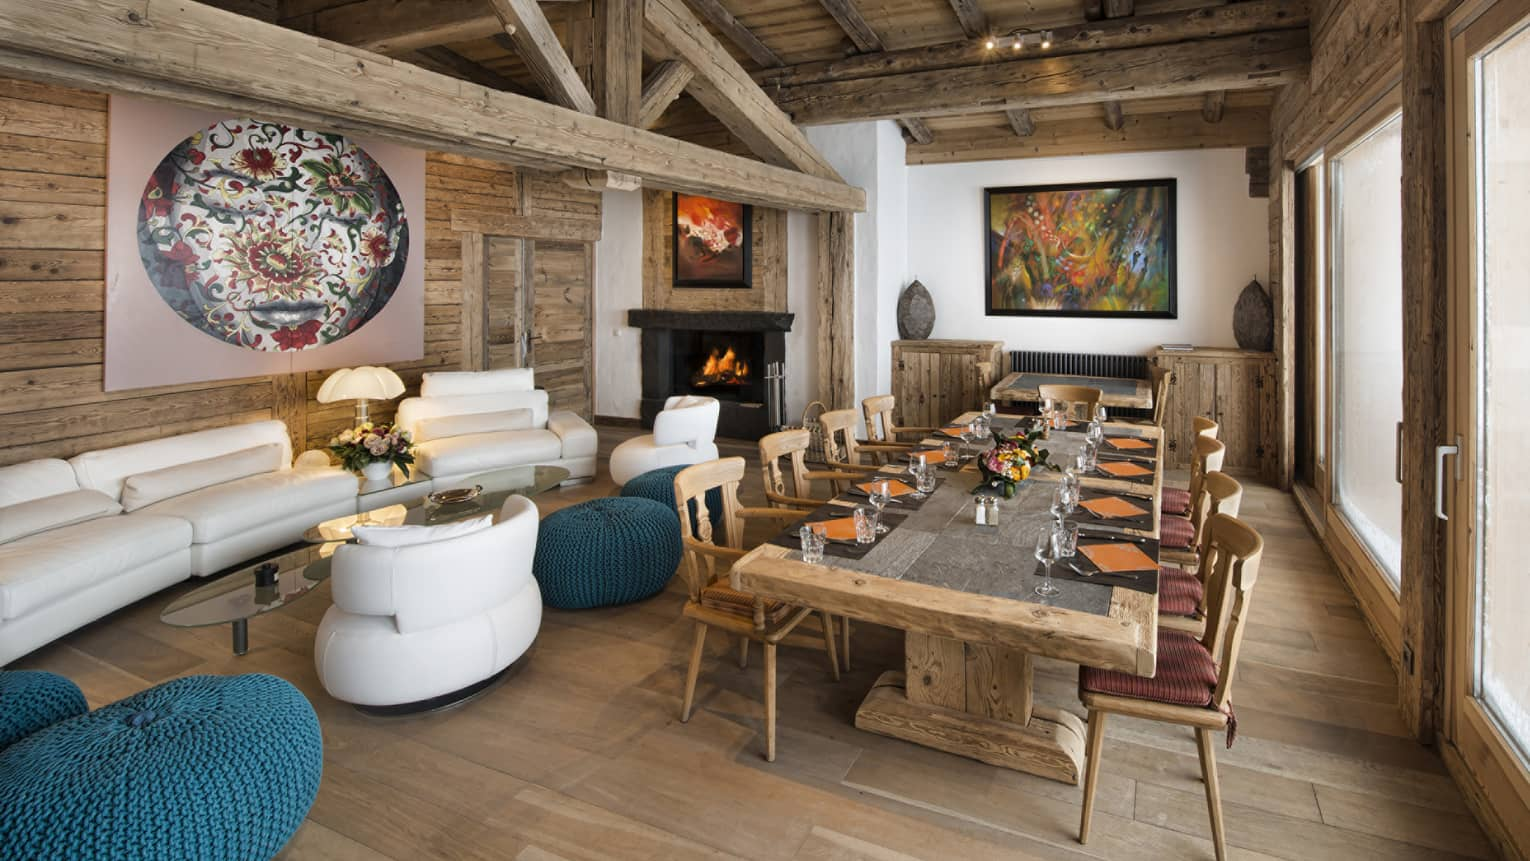 Ideal Suite lodge with modern white sofa, armchairs and long rustic wood dining table